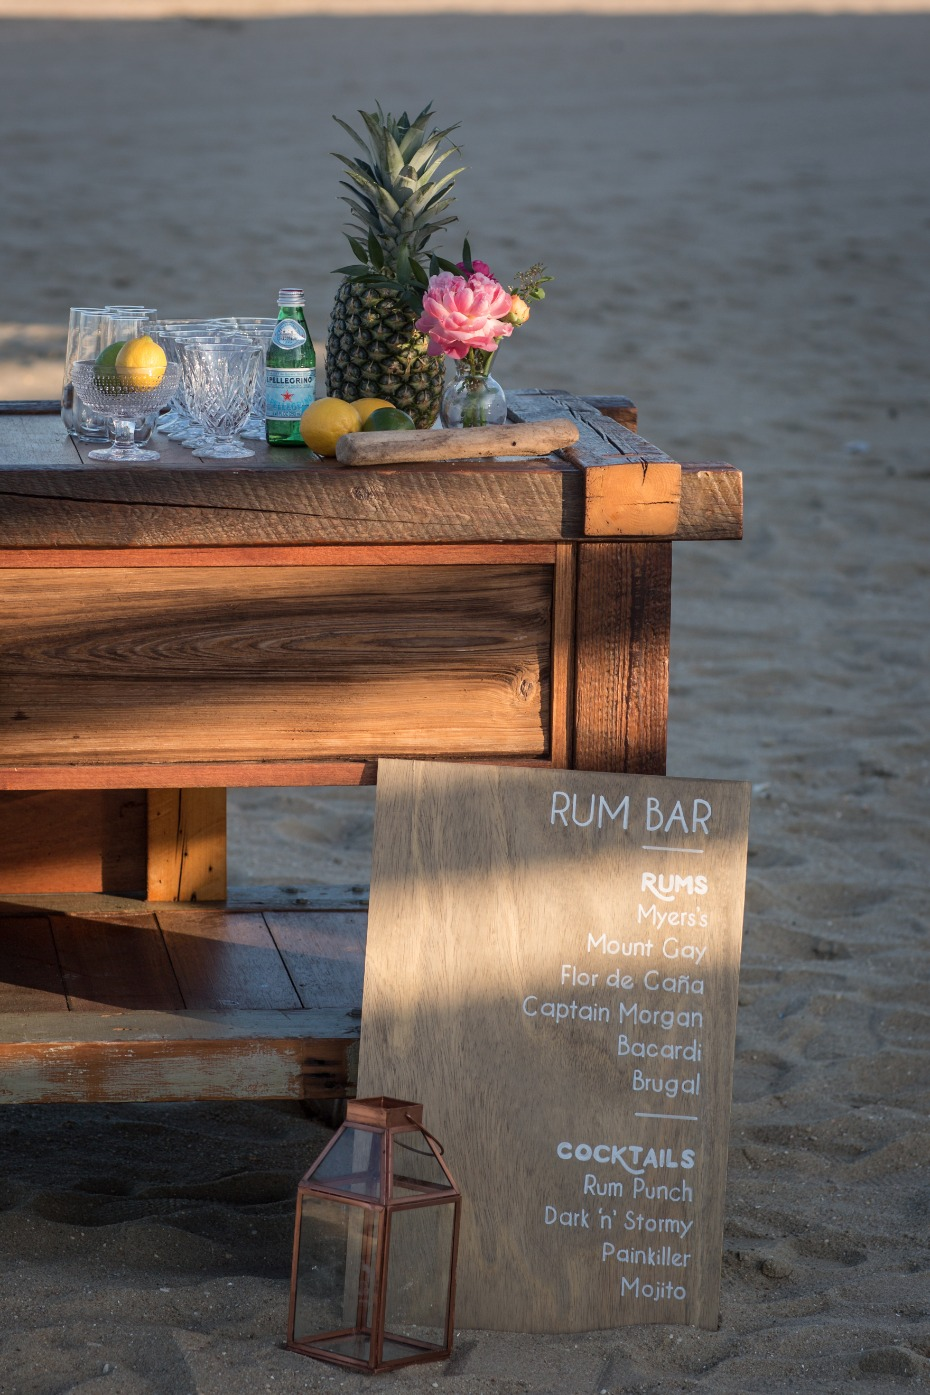 rum bar wedding sign